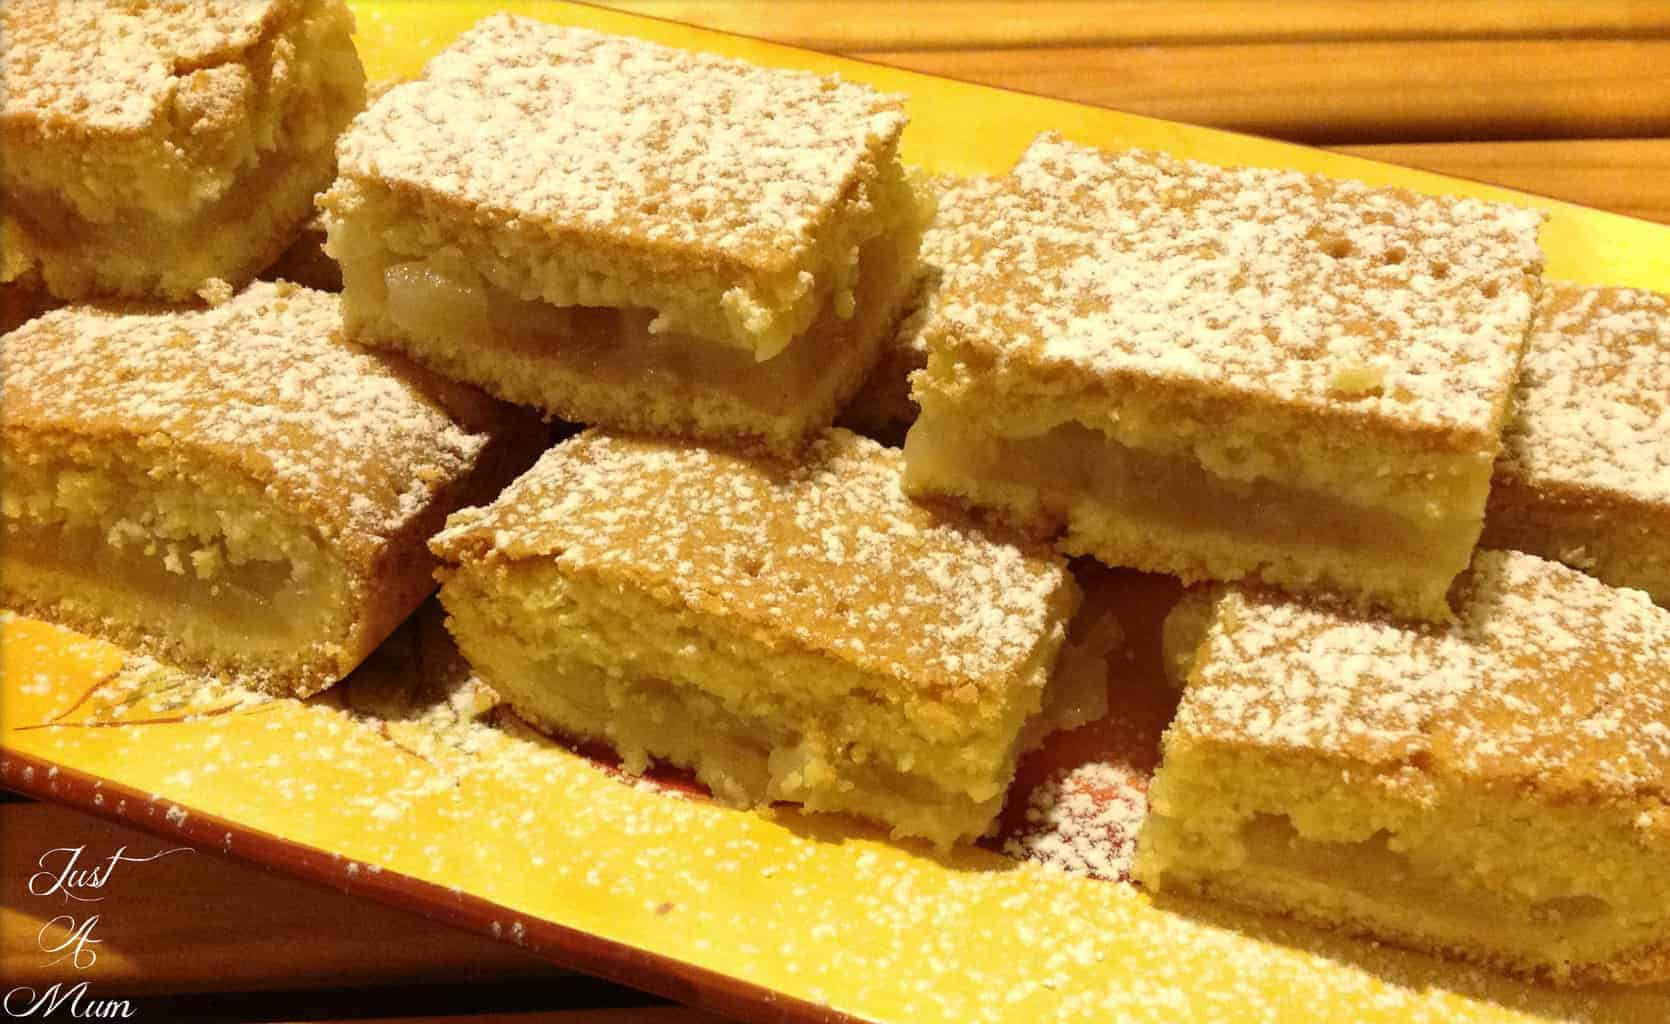 Plate of sliced Apple Shortcake